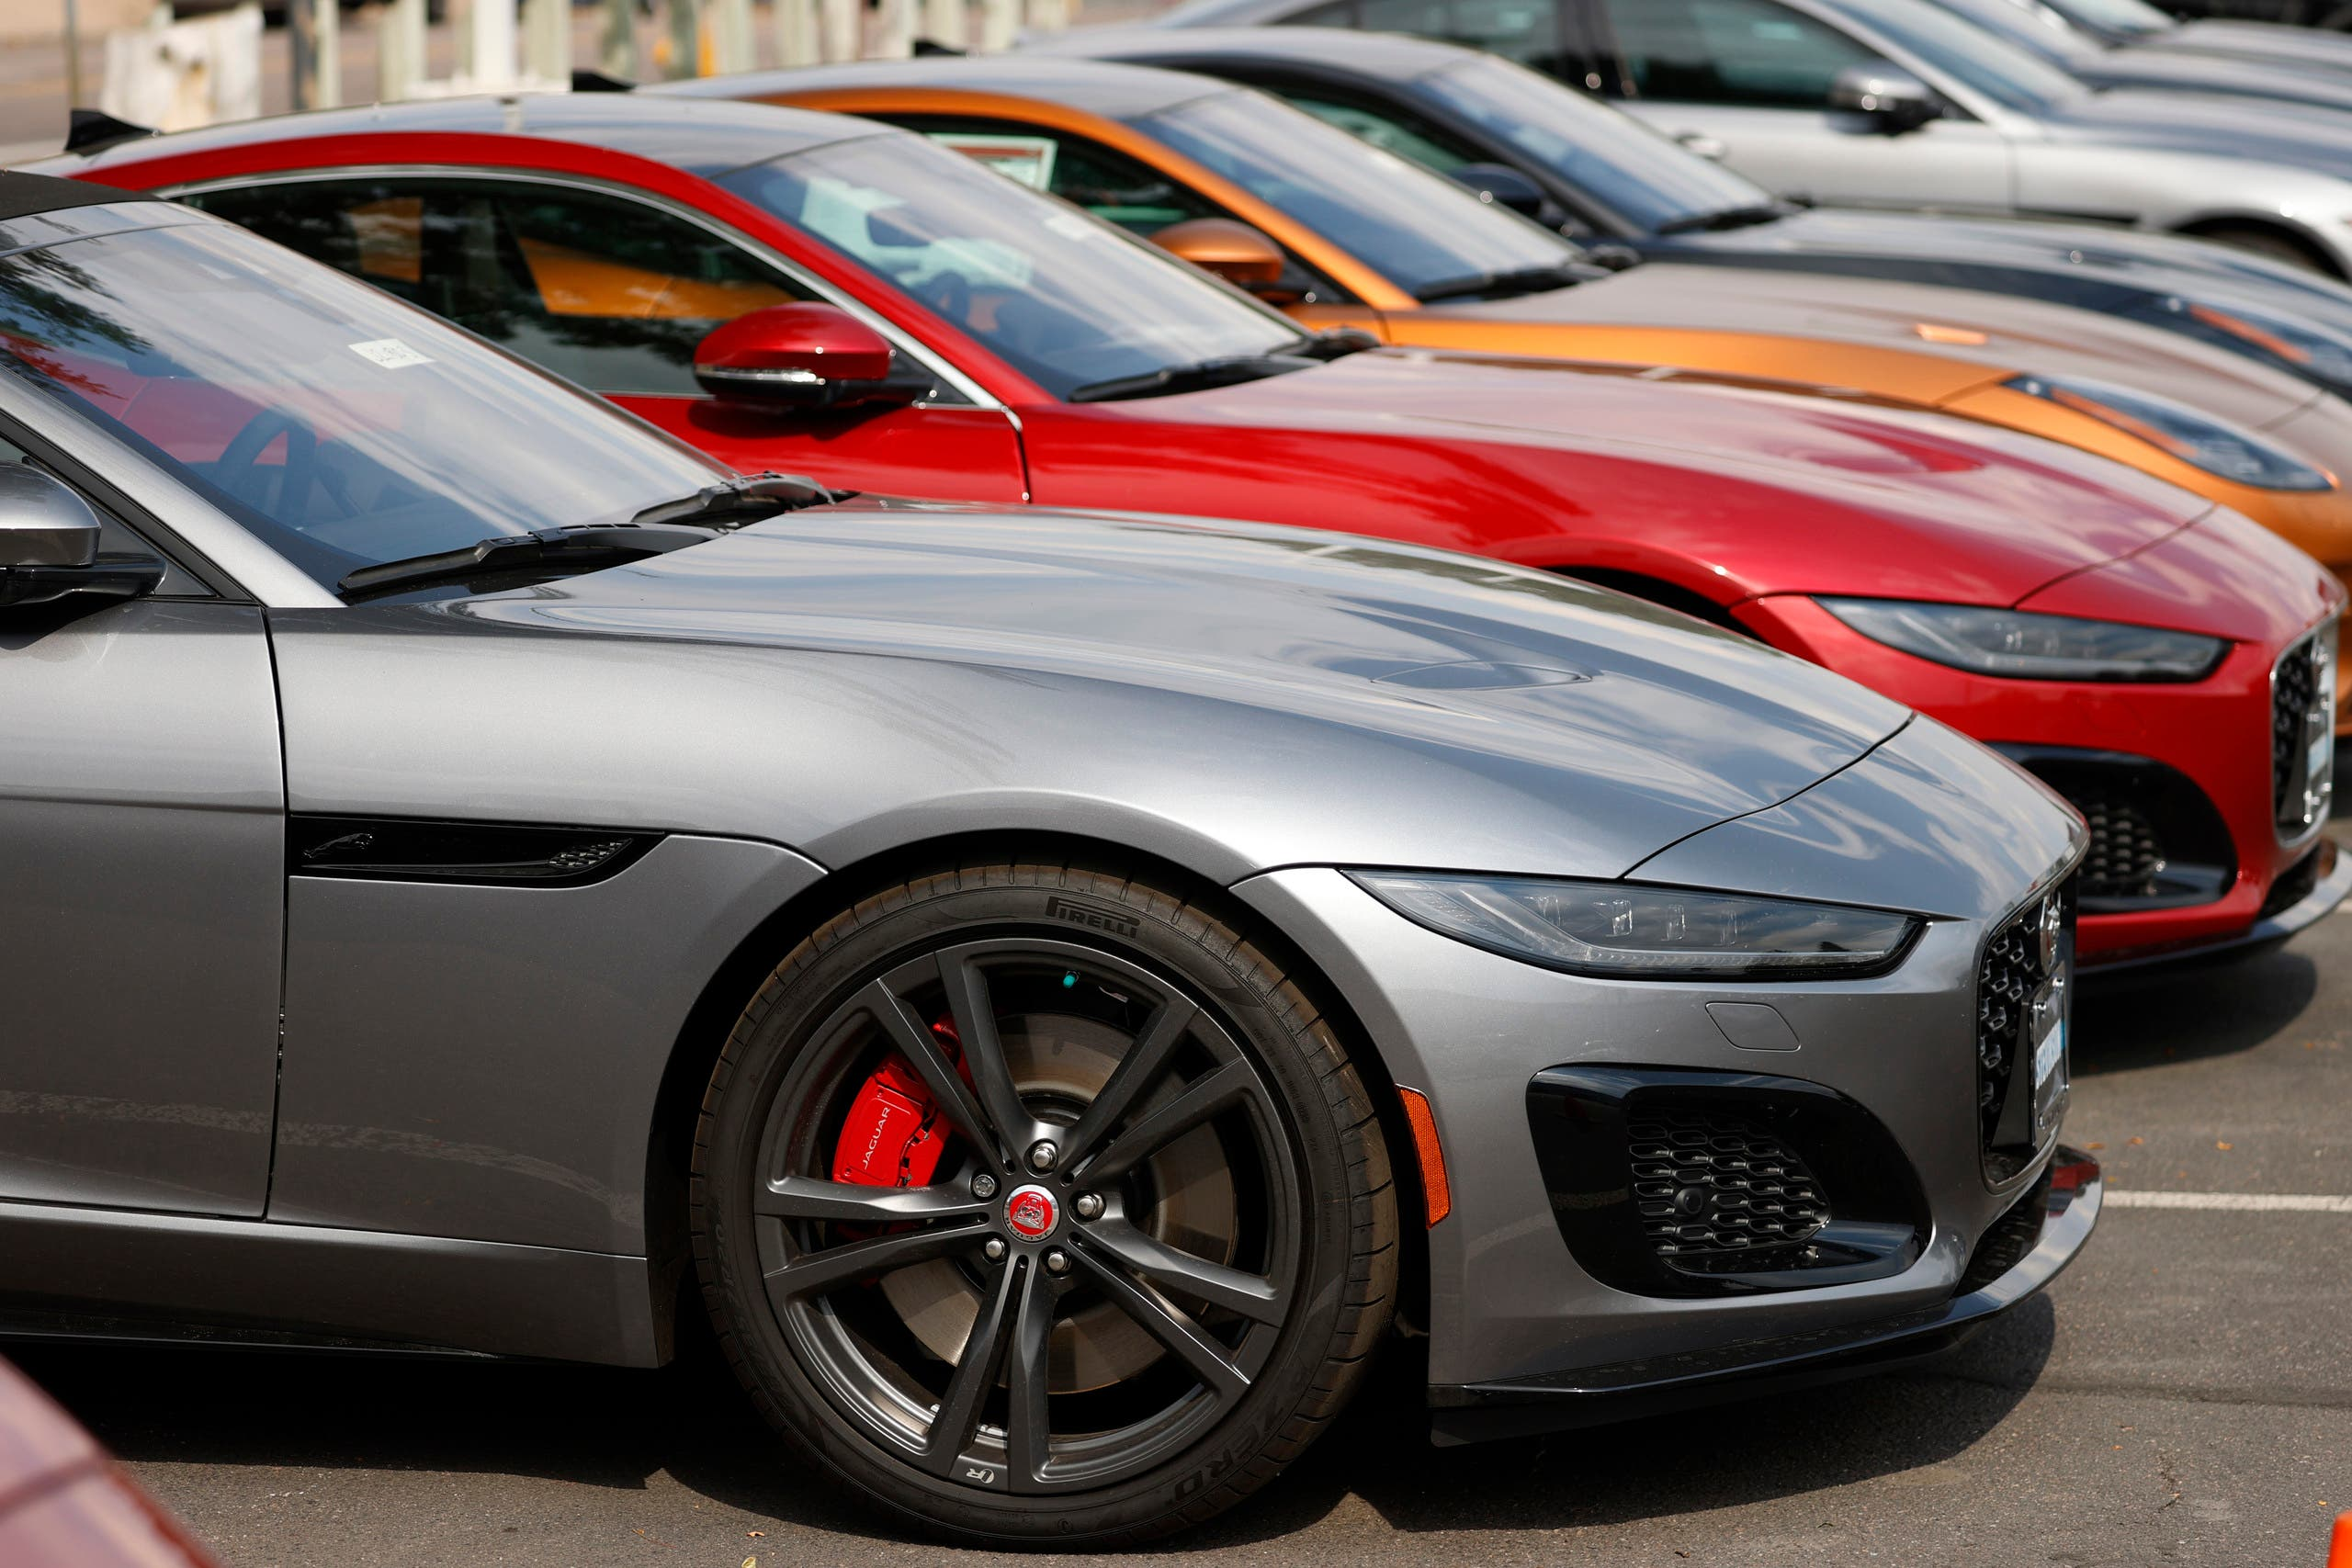 Unsold 2020 F-Type vehicles sit at a Jaguar dealership late Sunday, Aug. 9, 2020, in Littleton, Colo. (AP)